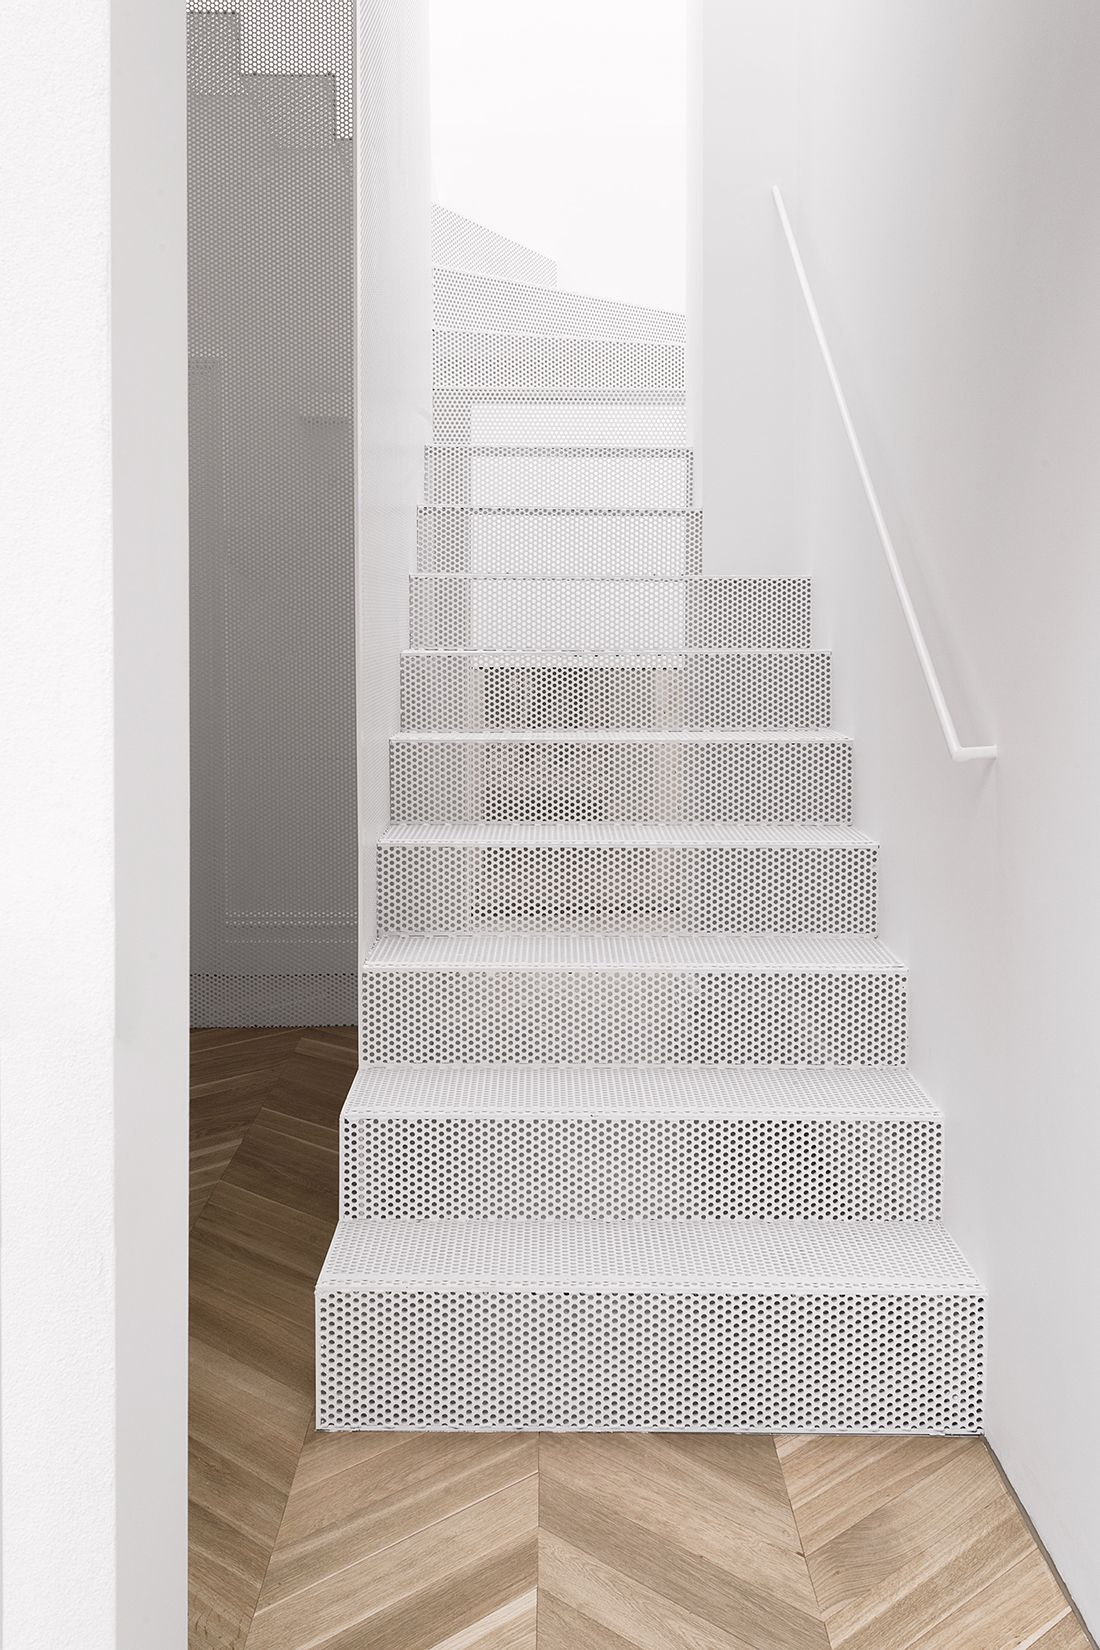 Best Perforated Metal Staircase By Renato D Ettorre 59 S T A 400 x 300